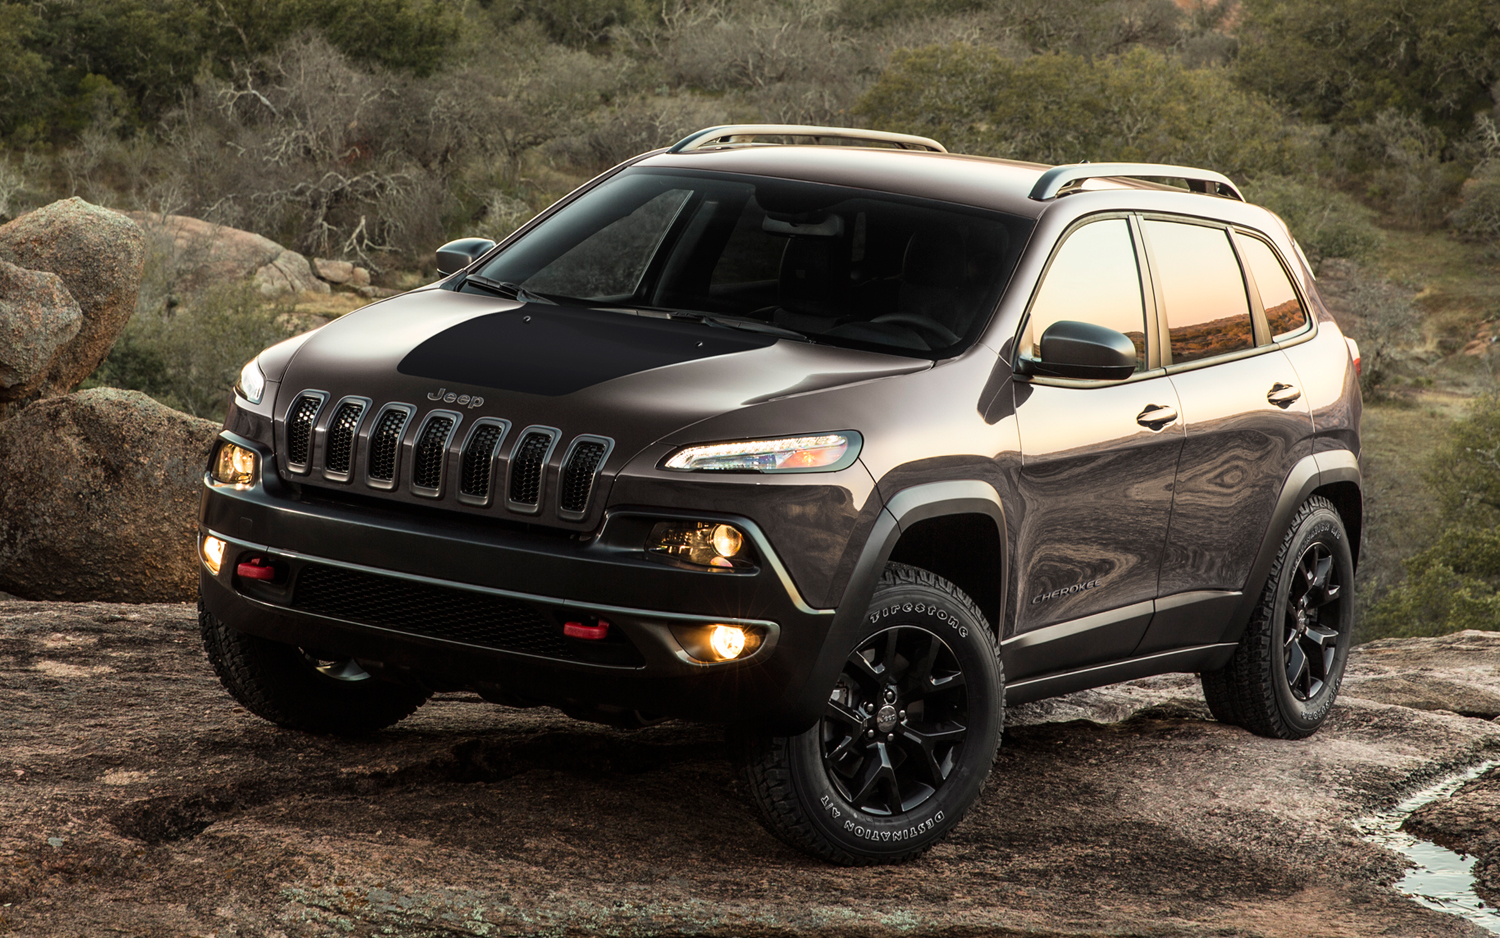 2014 jeep cherokee review car reviews new car prices review ebooks. Cars Review. Best American Auto & Cars Review